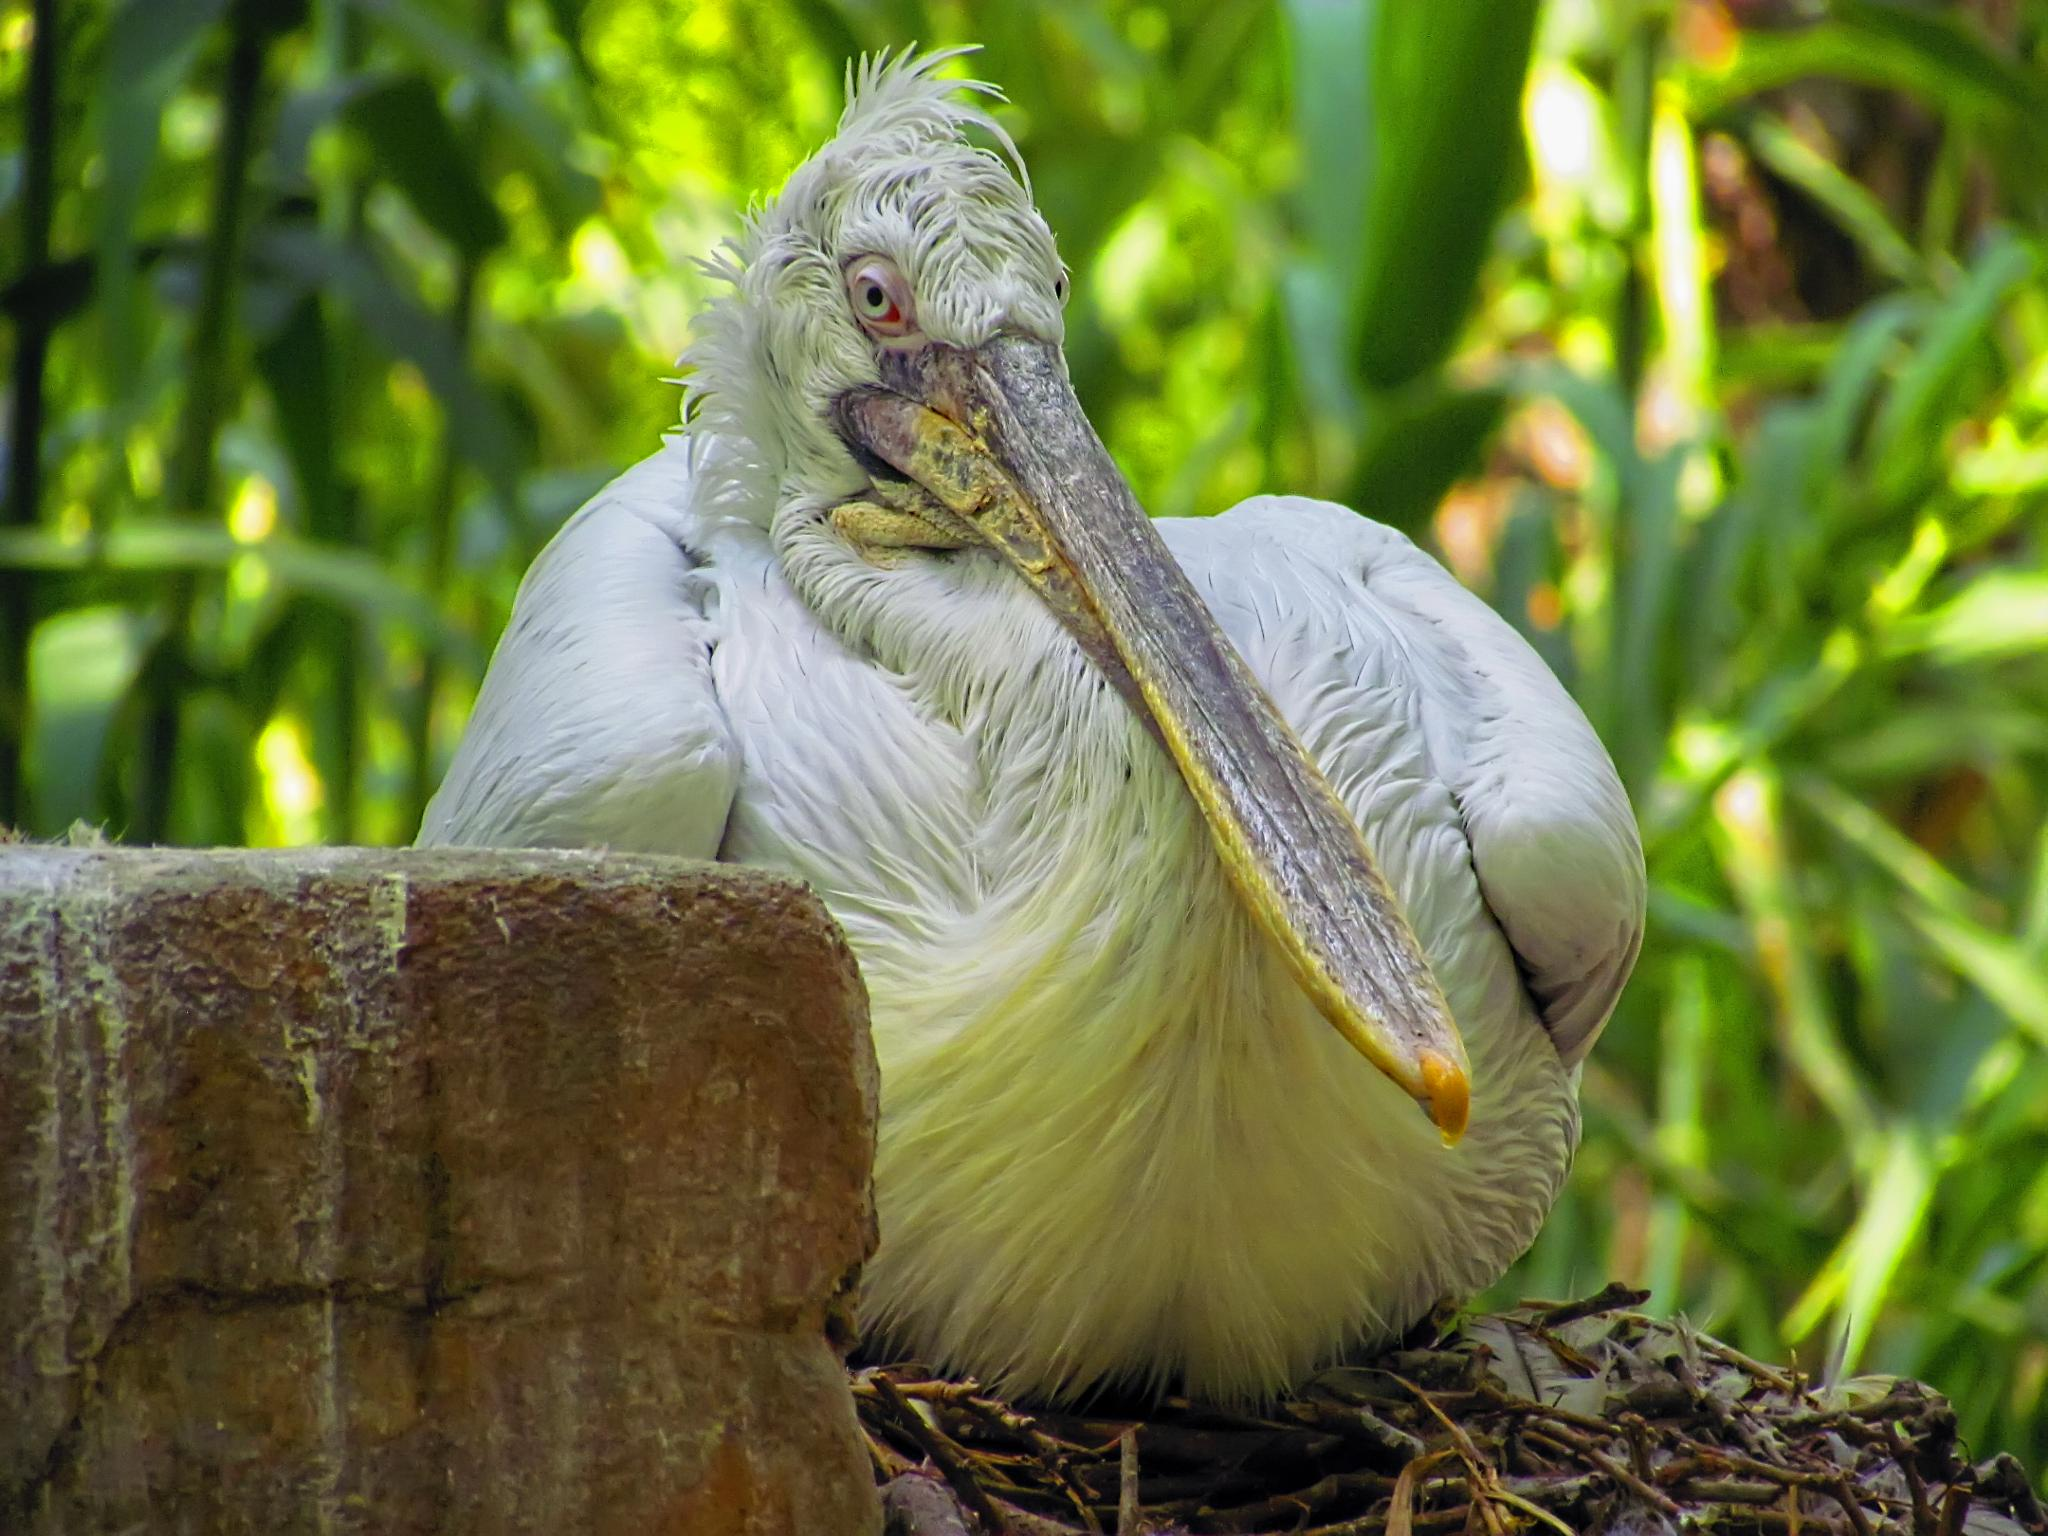 The Pelican by rubem.campos